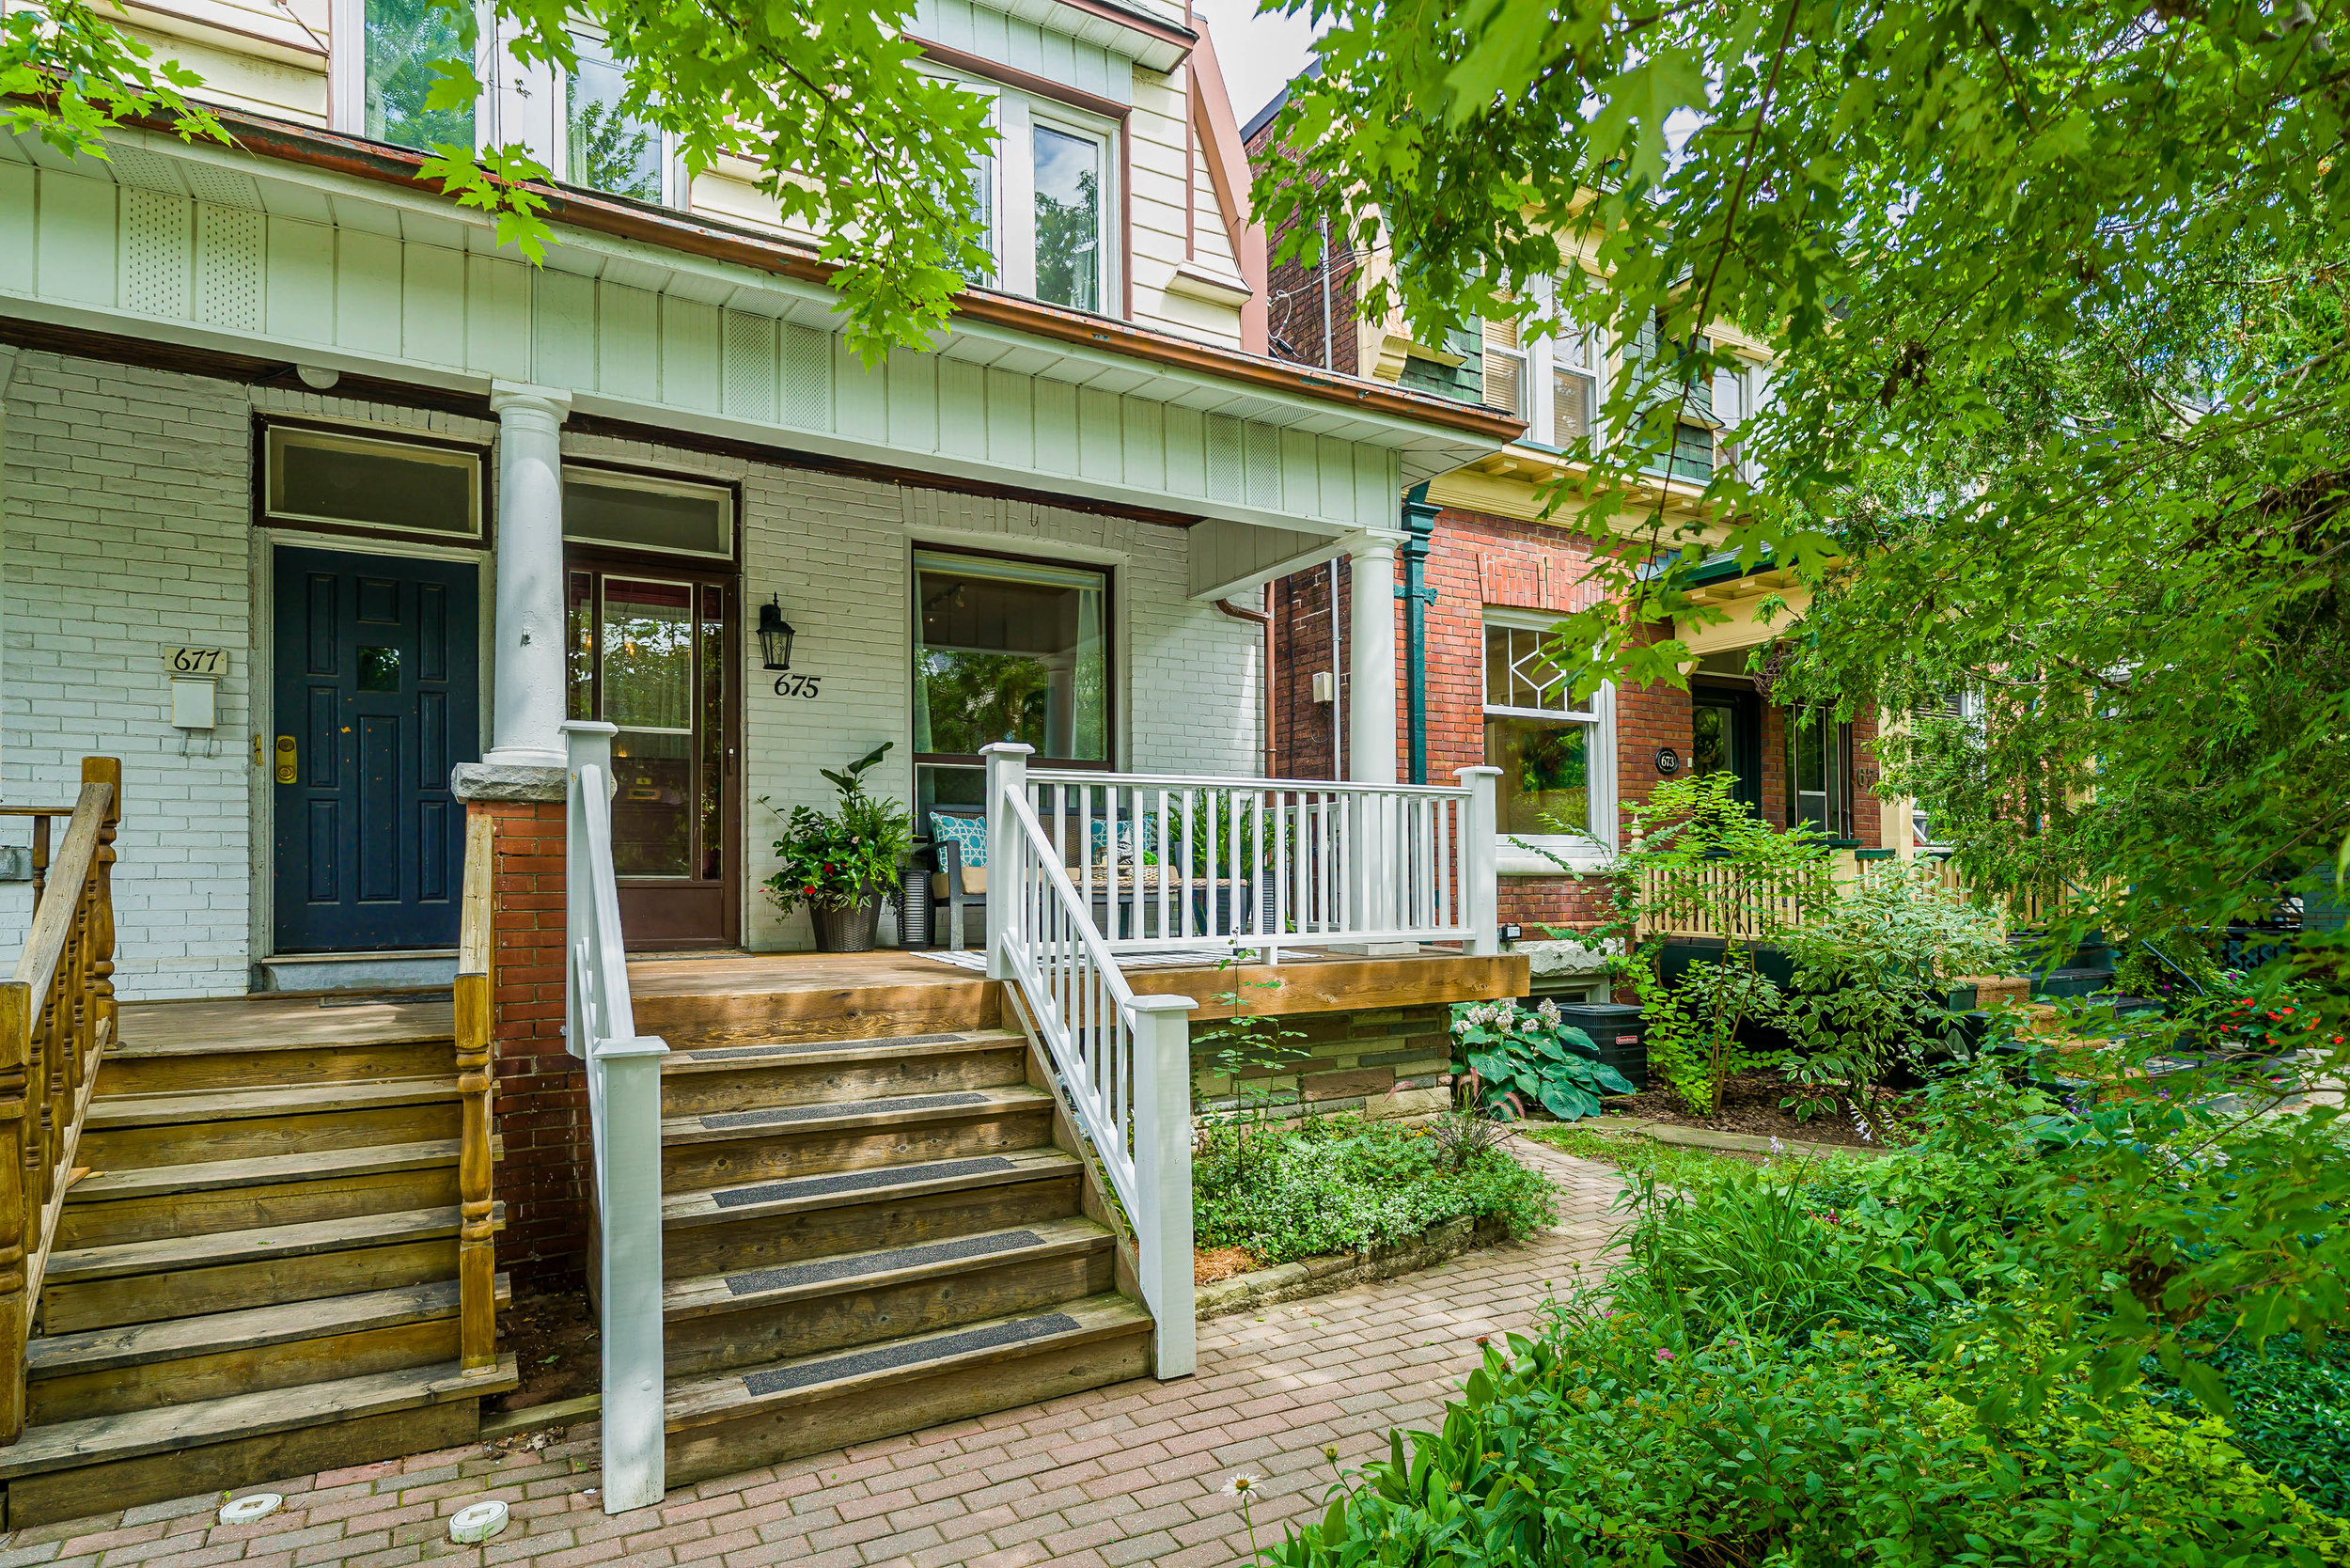 675 Shaw Street - SOLD